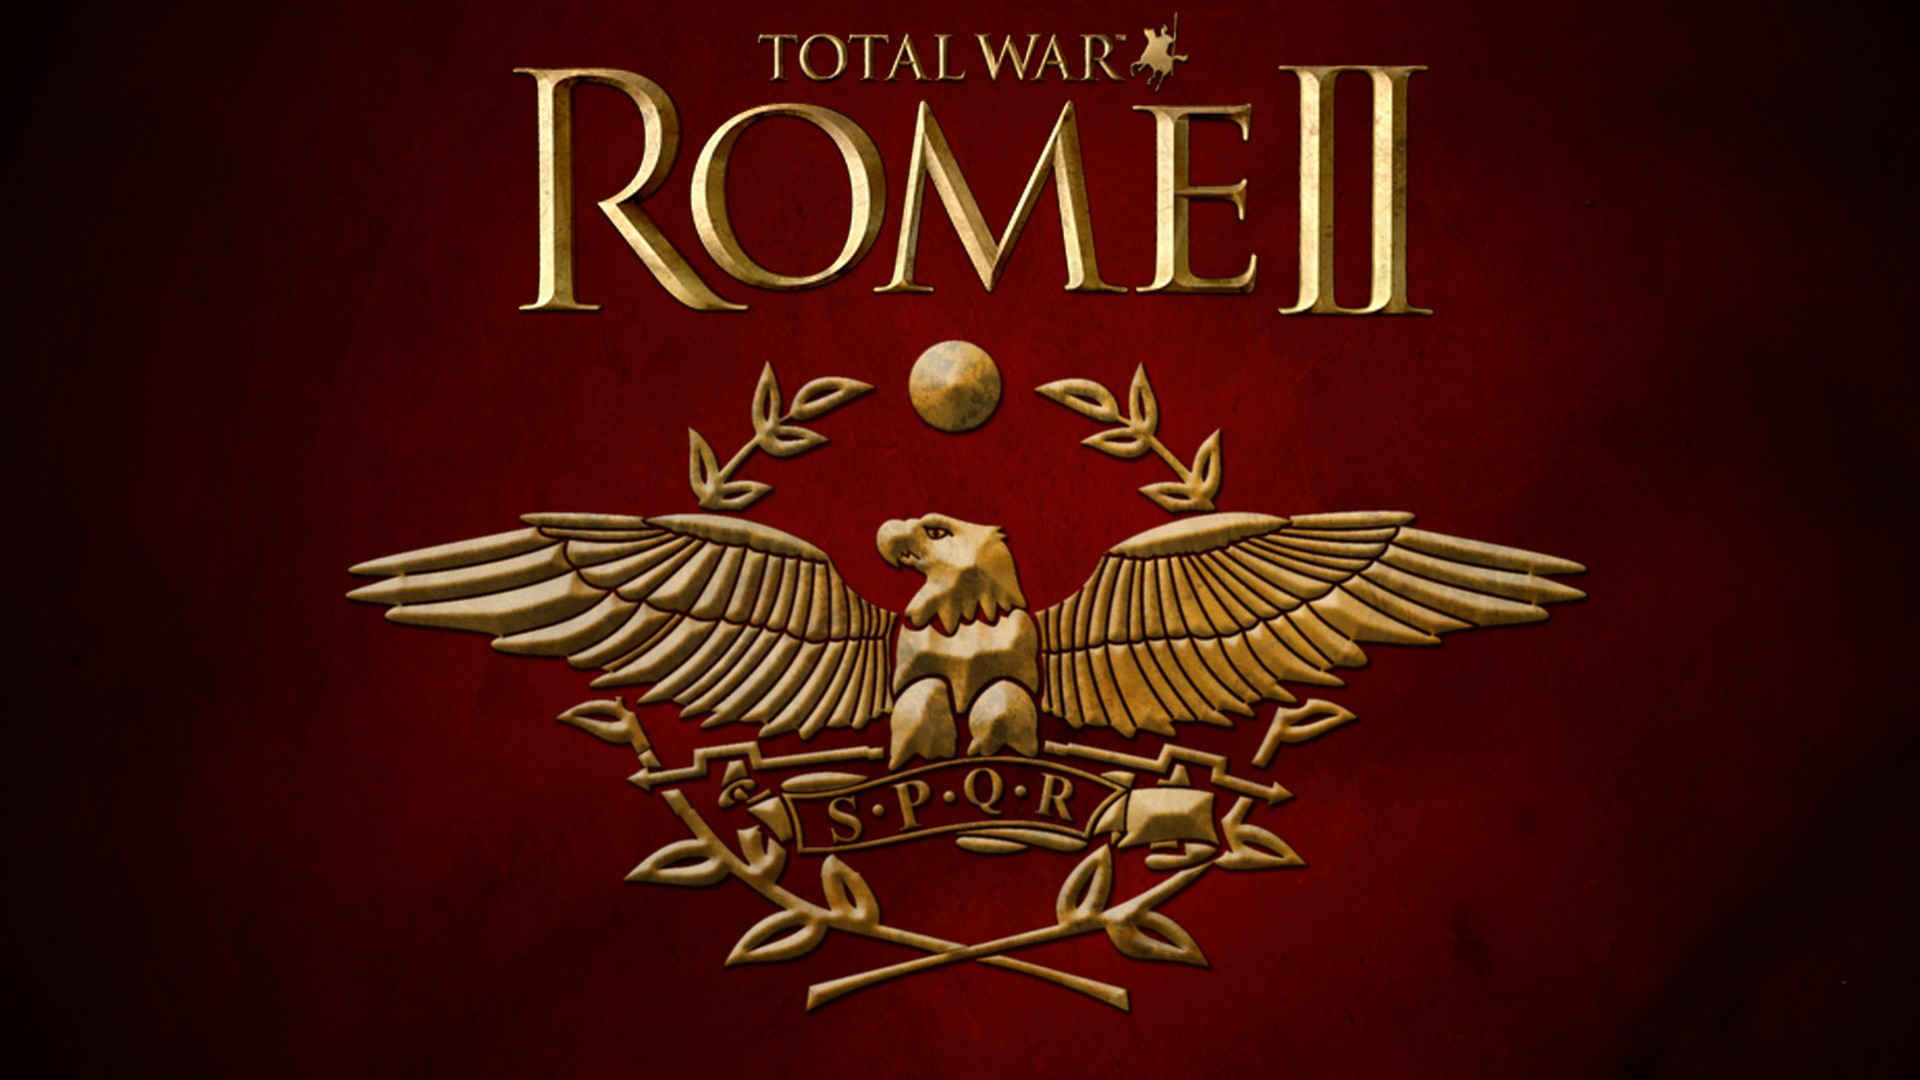 total_war_rome_ii_wallpaper_1_by_themis711-d55y55m